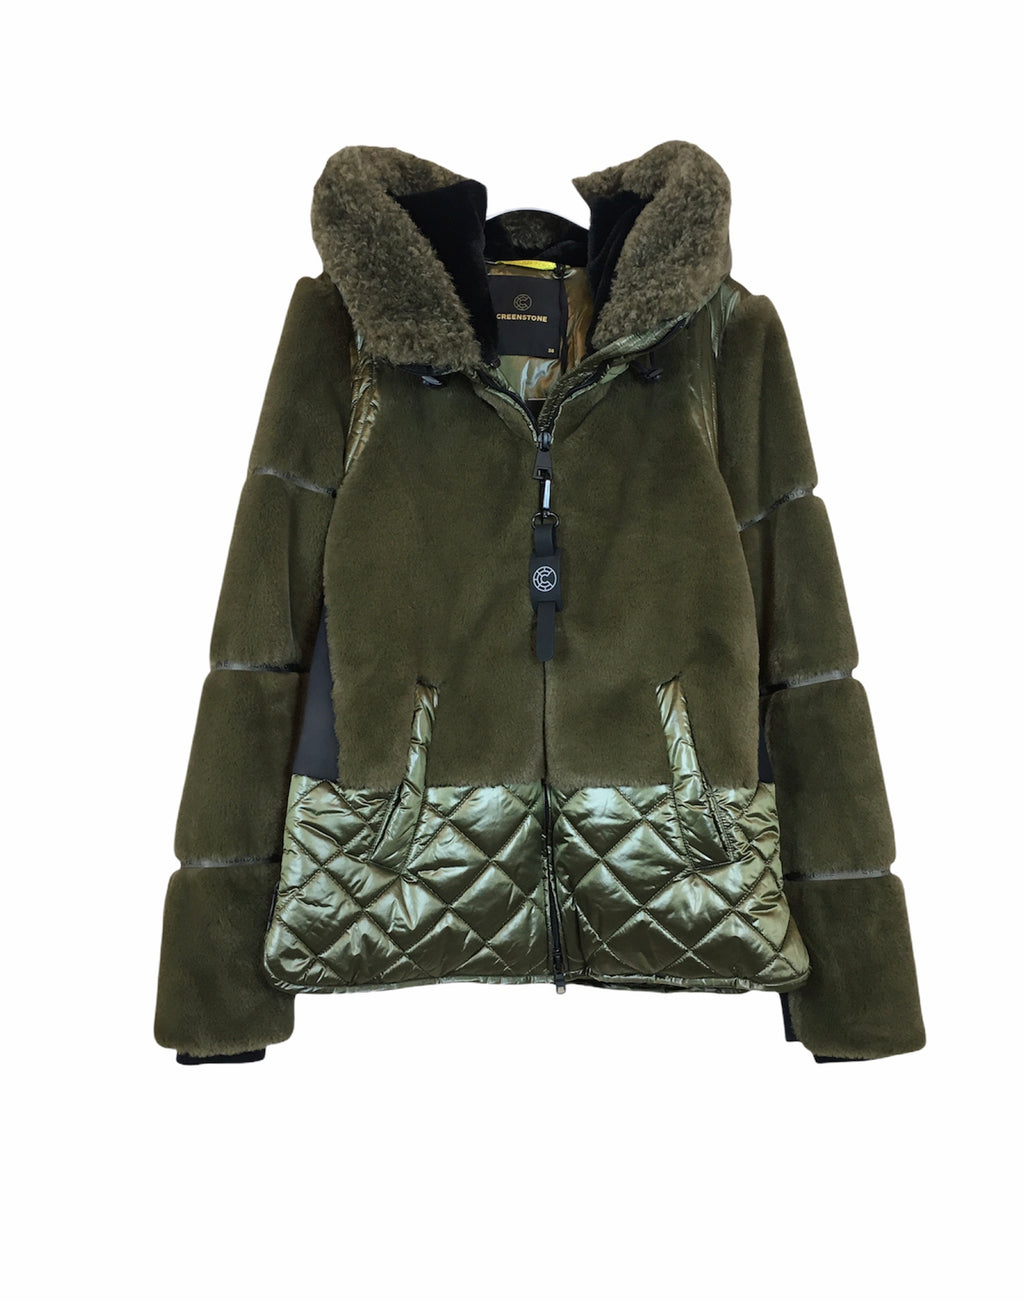 Creenstone Winterjacke